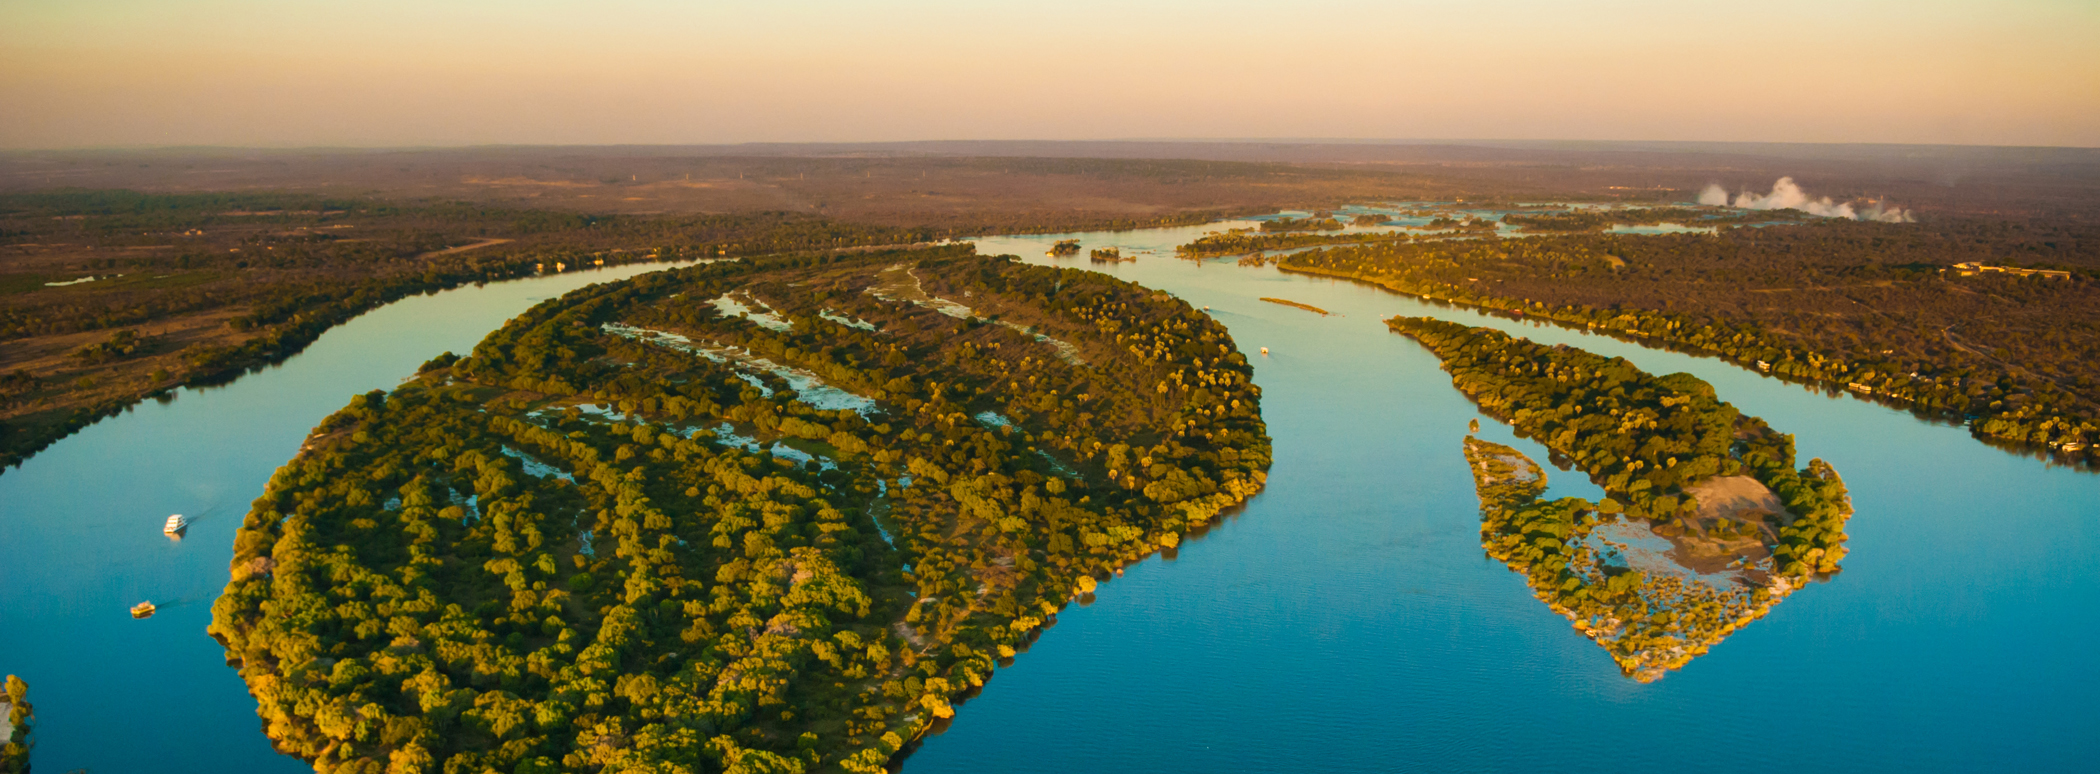 Zambezi river from the air